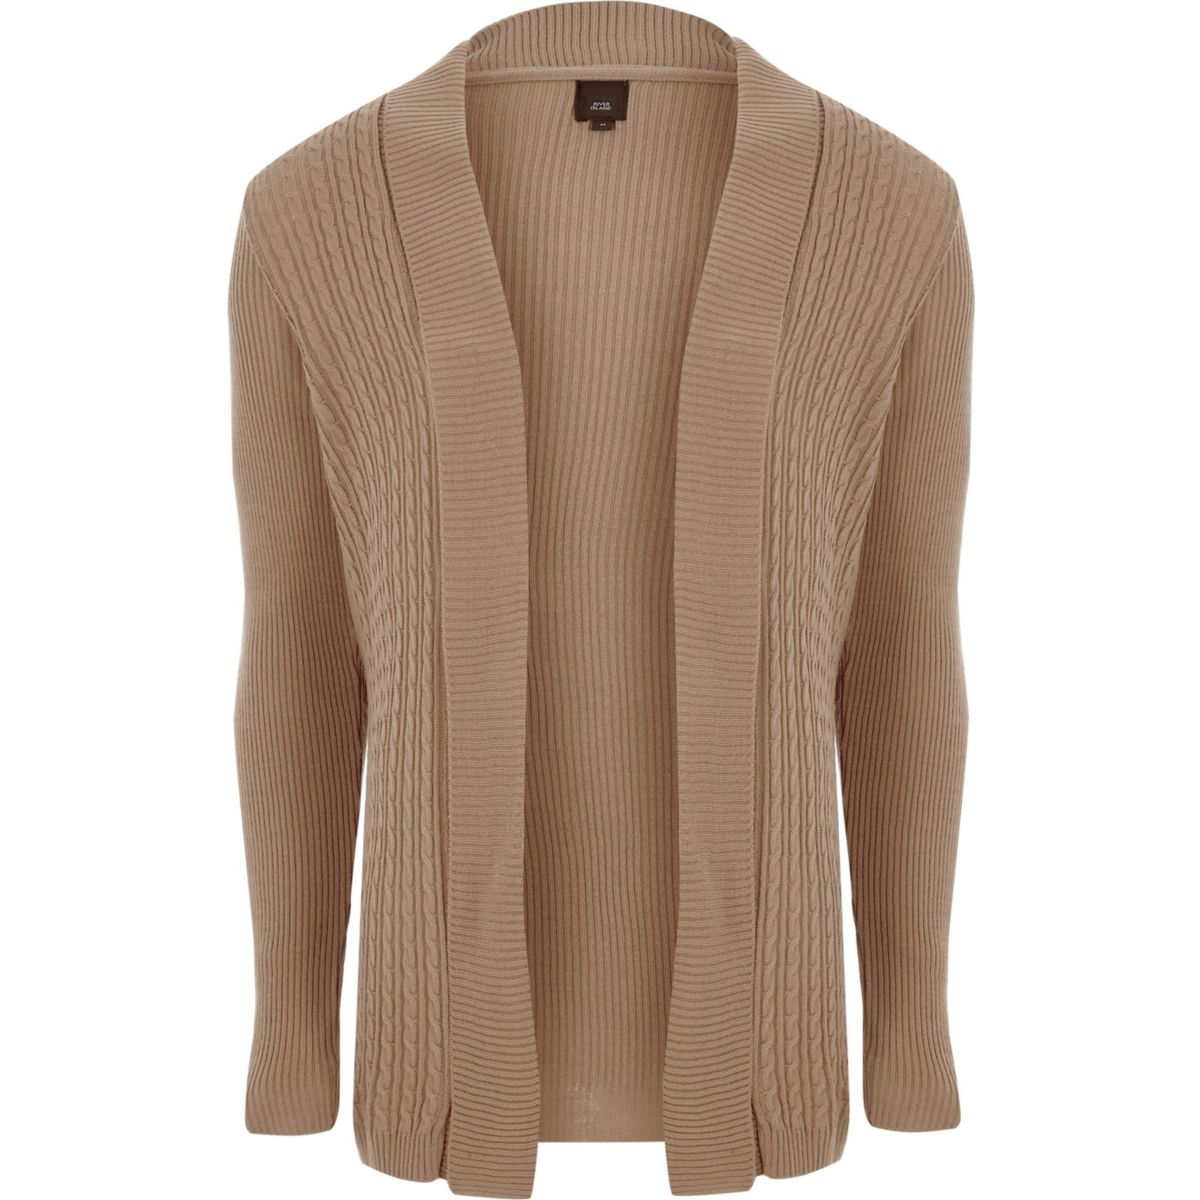 Brown Cable Knit Panel Cardigan Jumpers Cardigans Sale Men